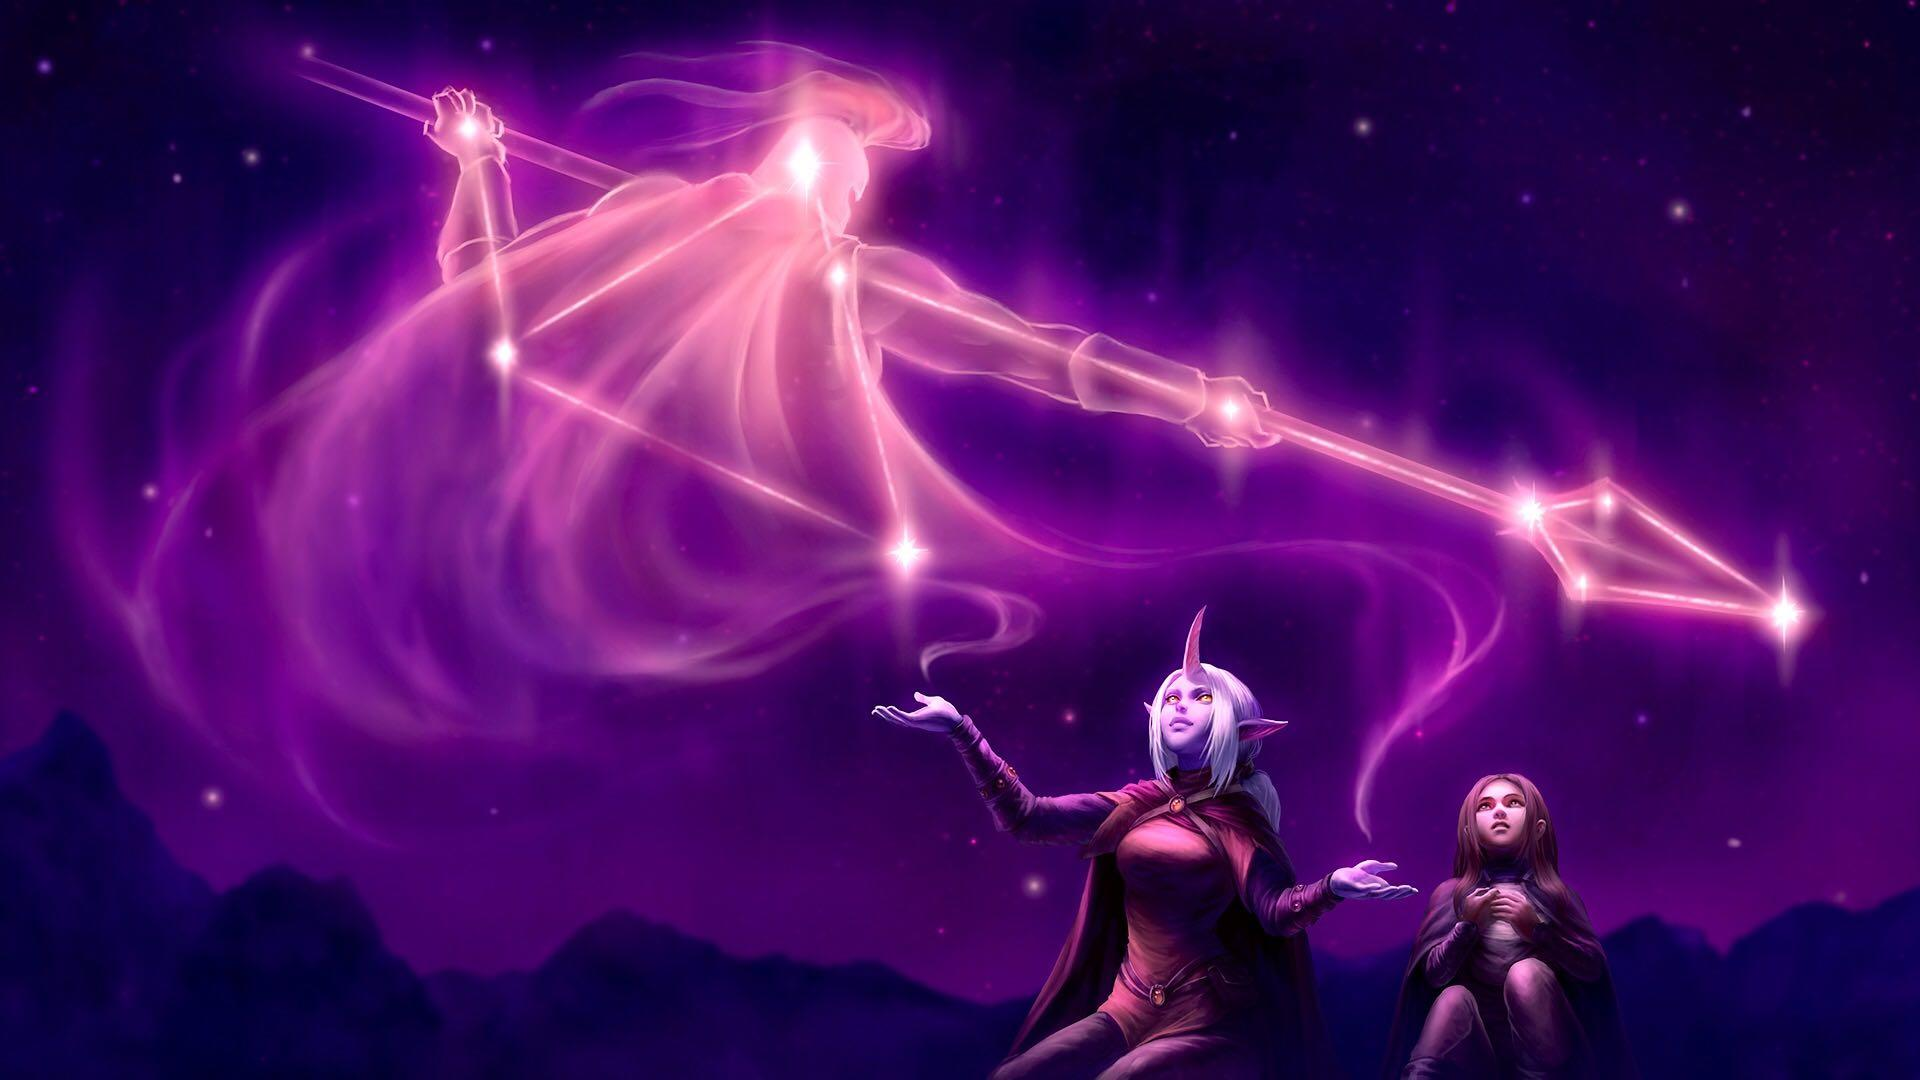 Soraka Halfway Between the Stars and Earth